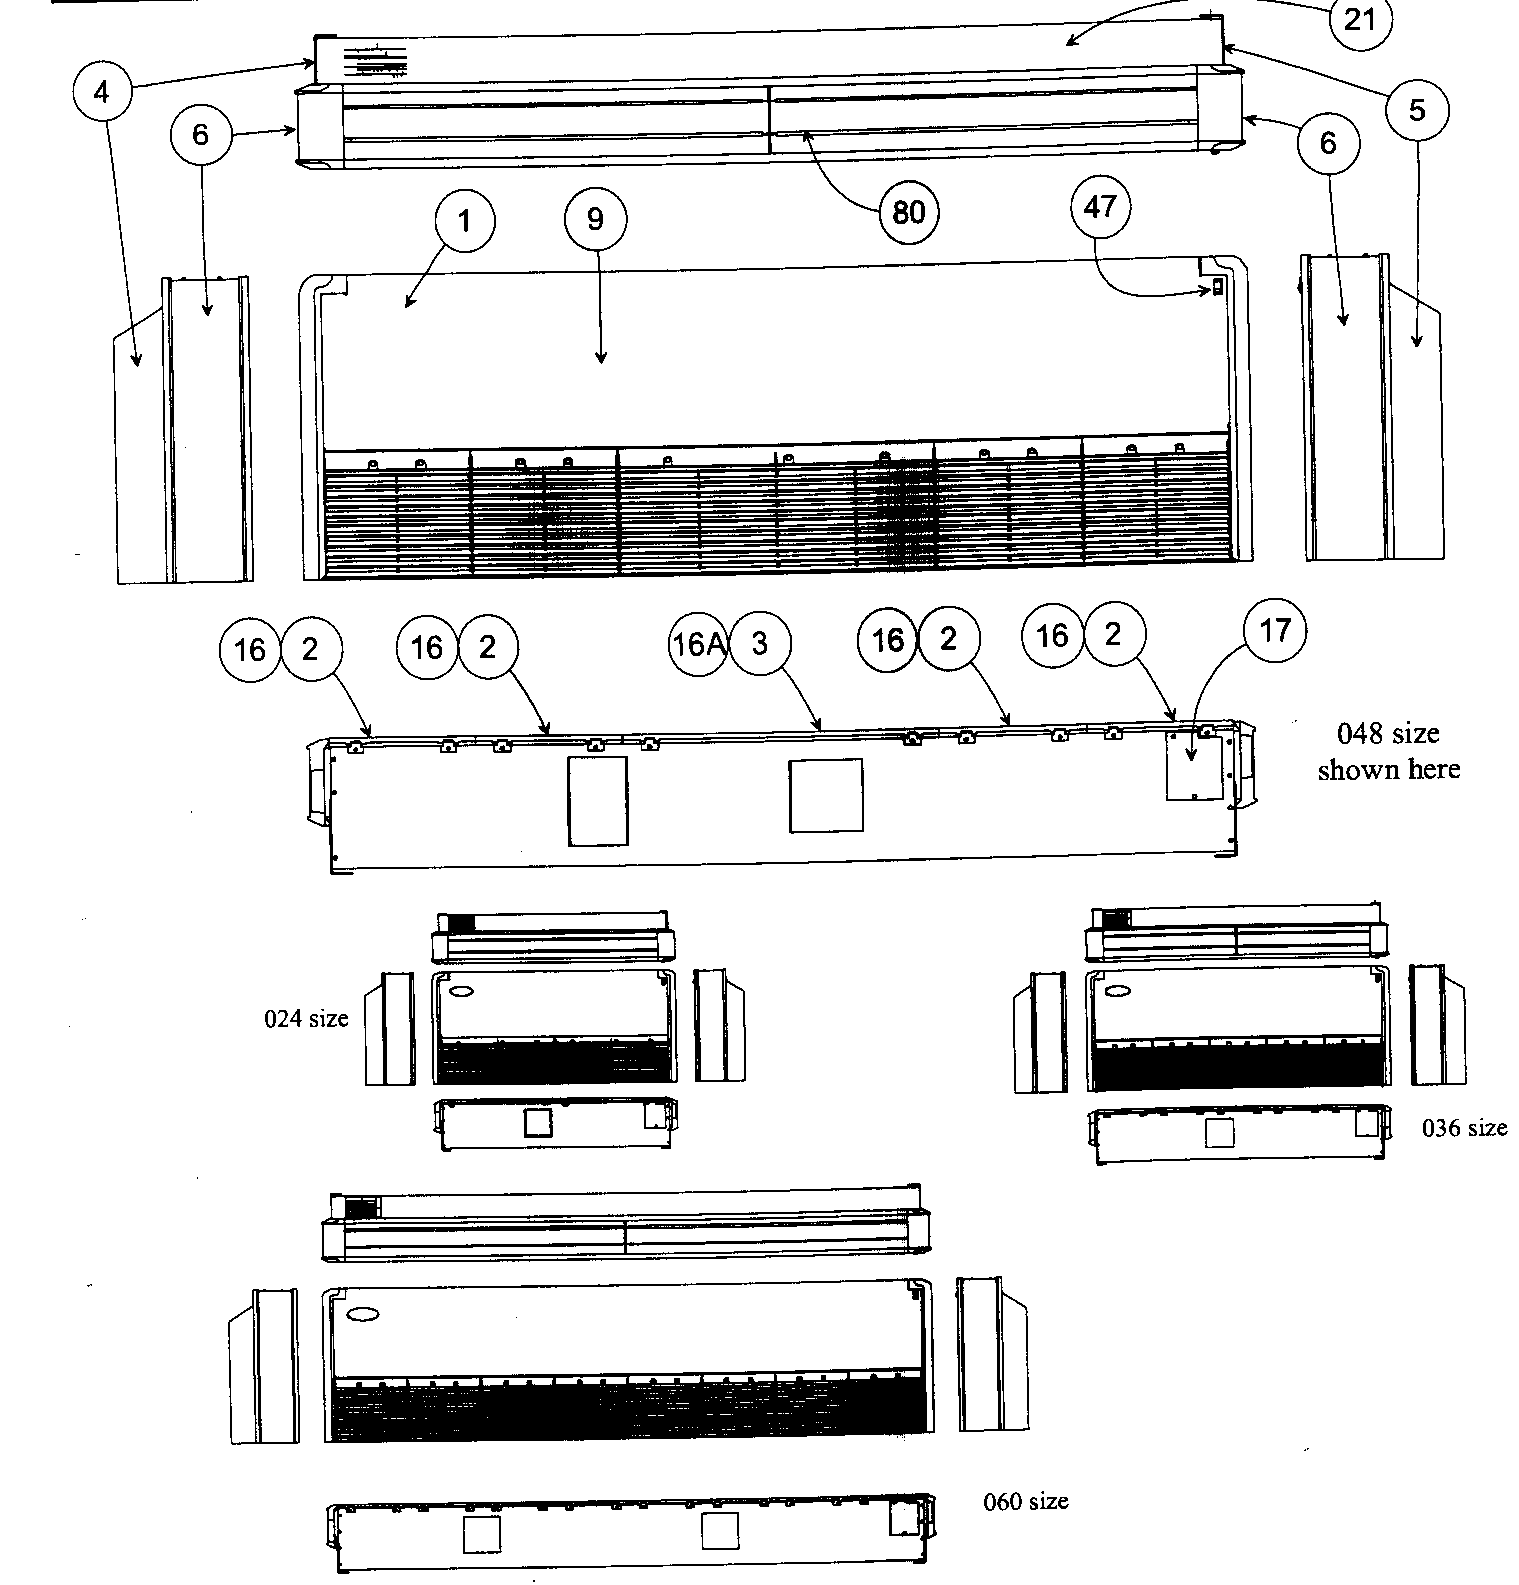 hight resolution of carrier 40qaq048300 front view diagram